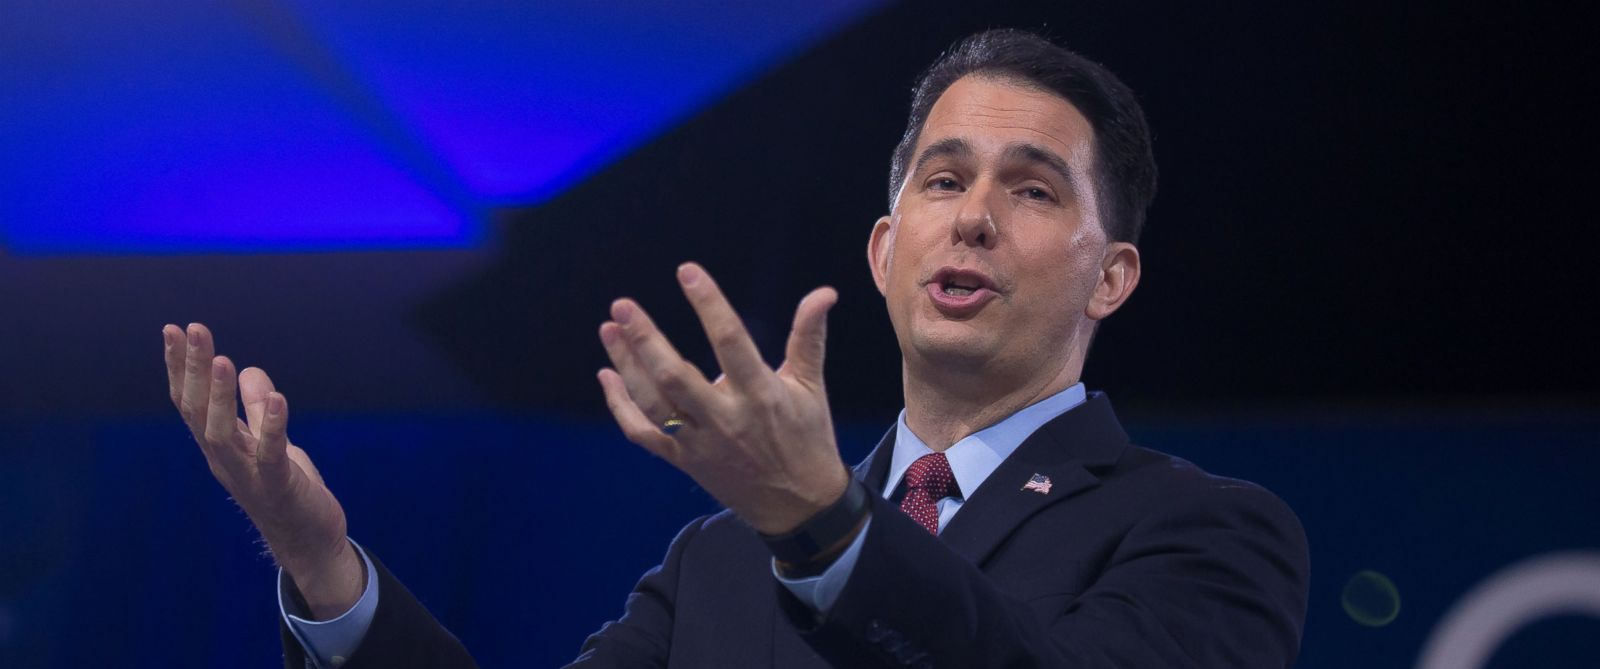 PHOTO: Gov. Scott Walker (R-WI) speaks at the 2016 Conservative Political Action Conference (CPAC) at the Gaylord National Resort & Convention Center at National Harbor MD on March 3, 2016.